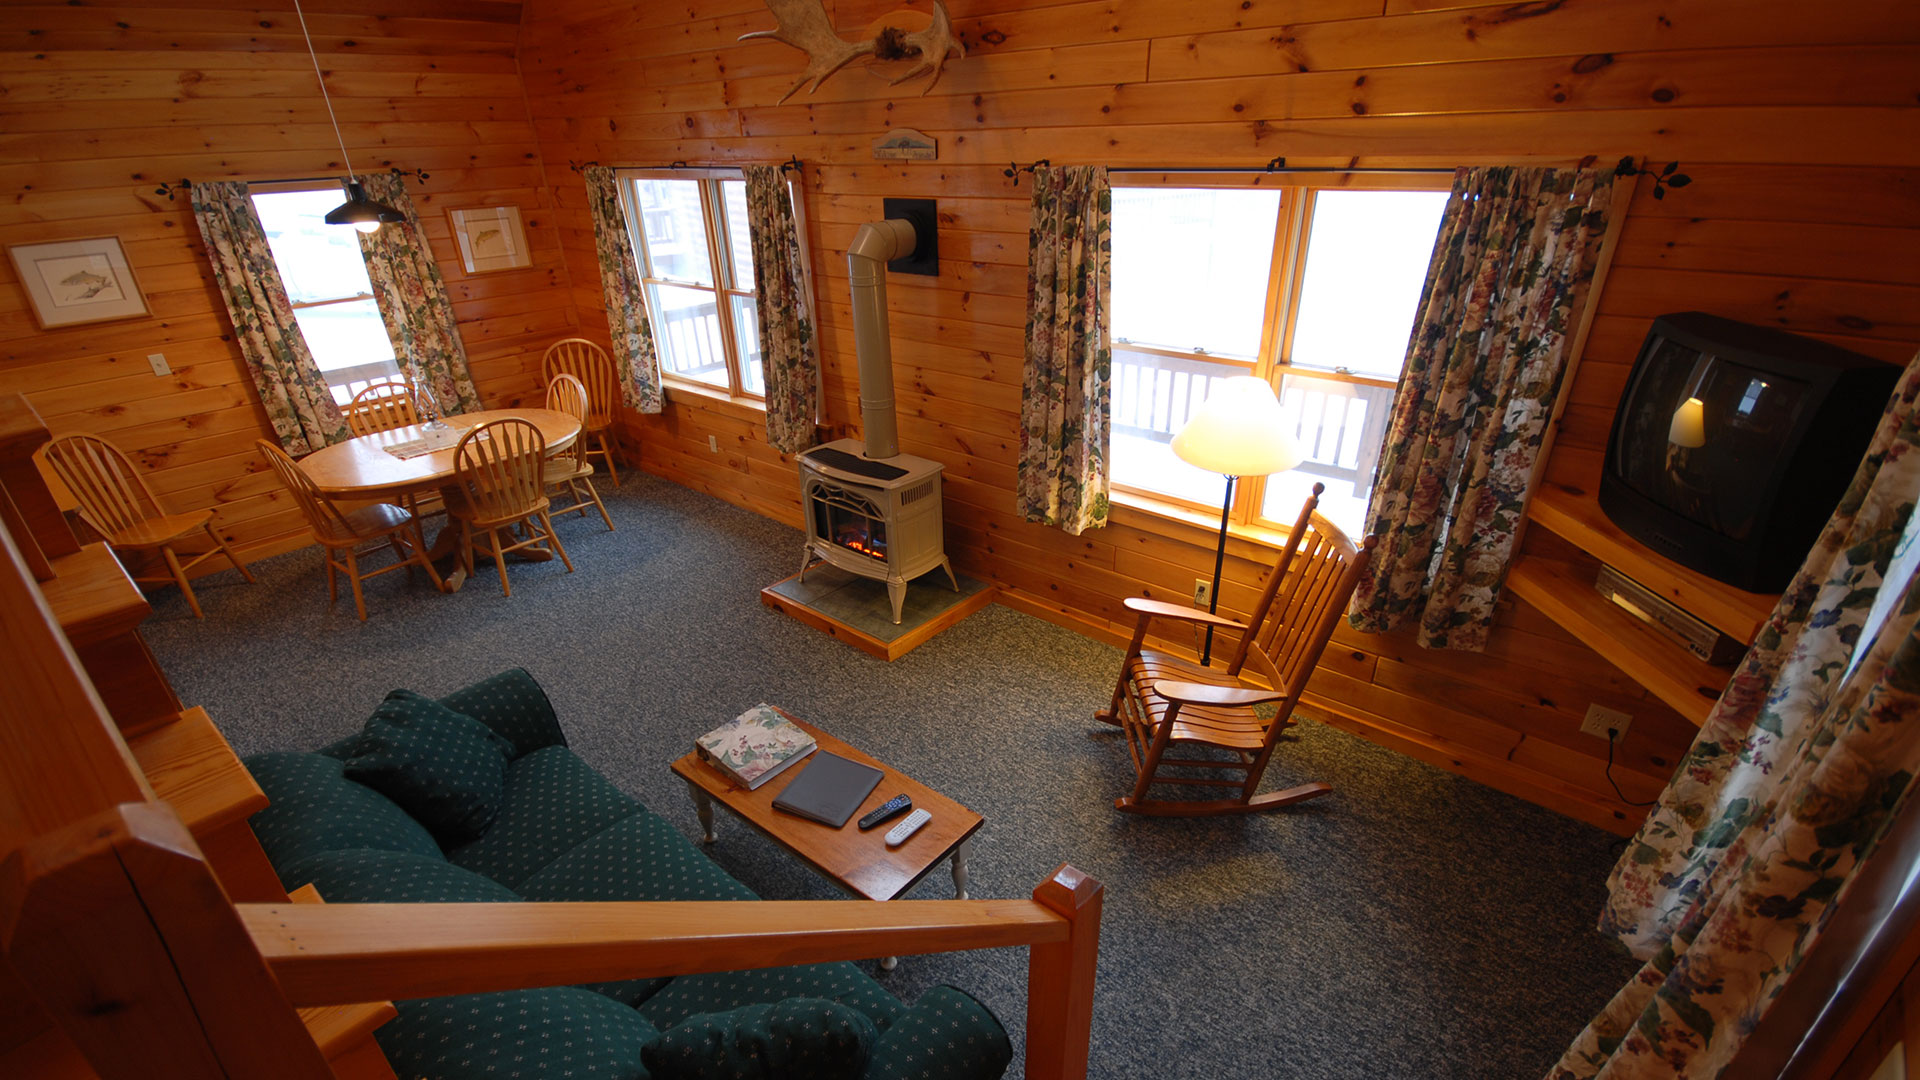 rentals destinations rental cabin new family best nh beach vacation cabins england critic art